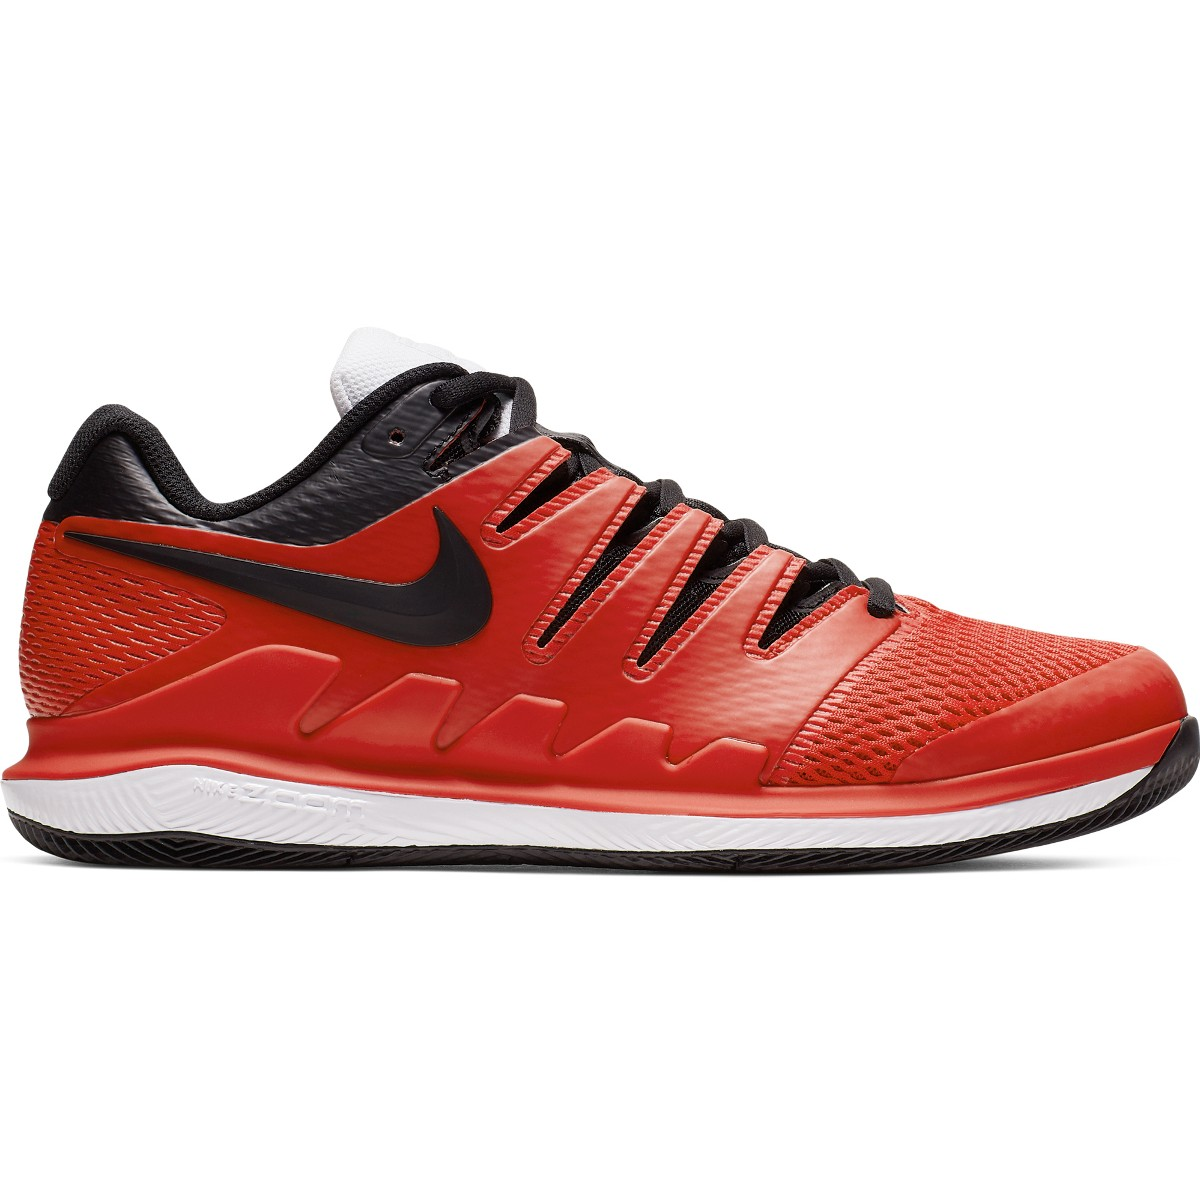 Nike Air Zoom Vapor X Zapatilla Todas Las Superficies